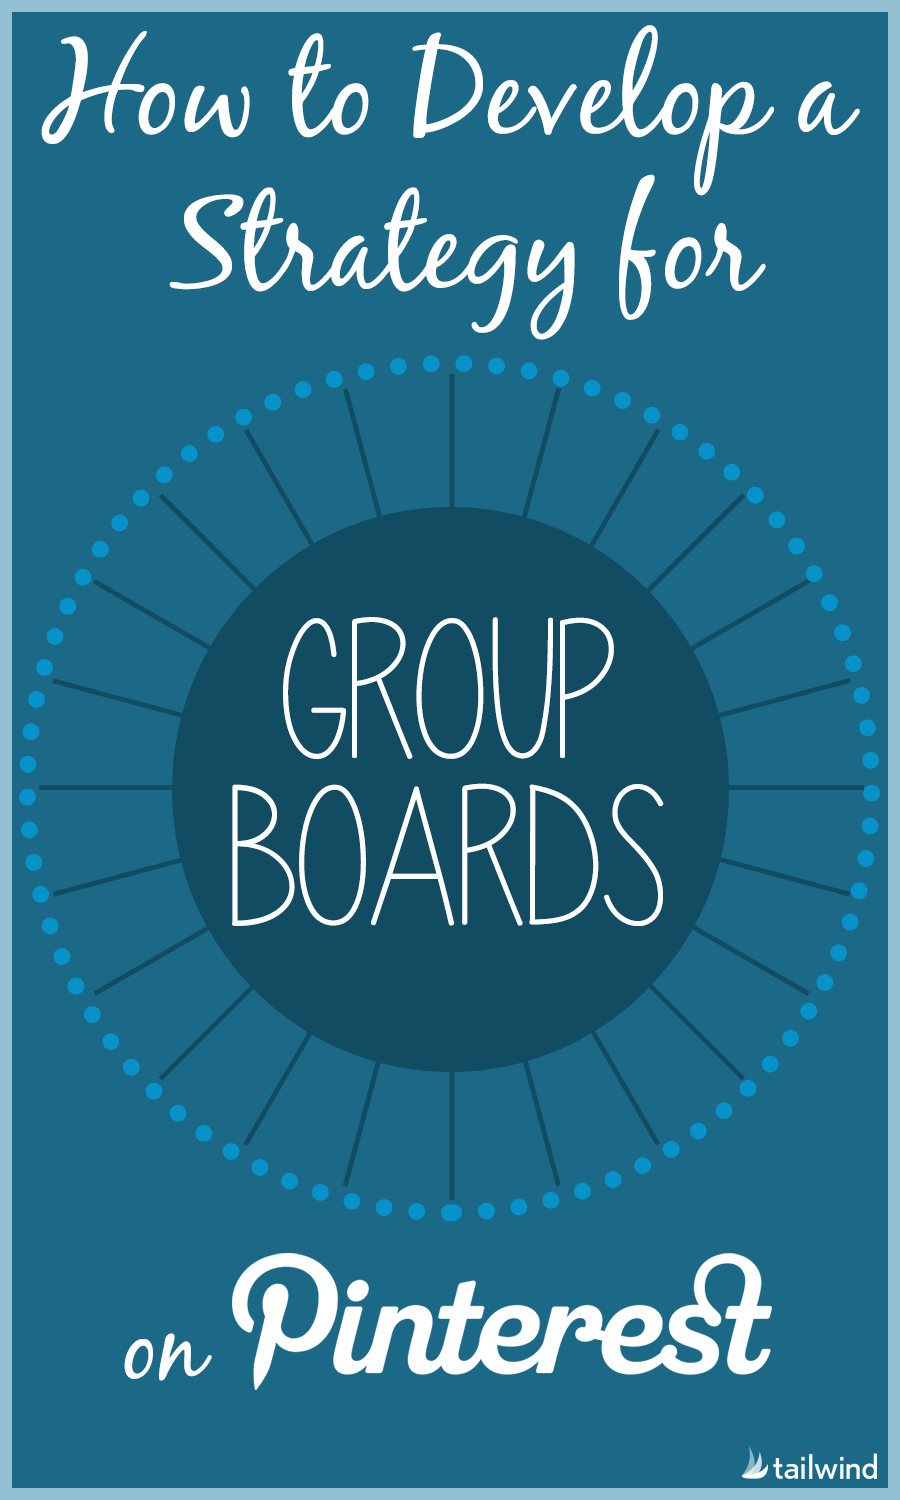 How to Develop a Strategy for Group Boards on Pinterest